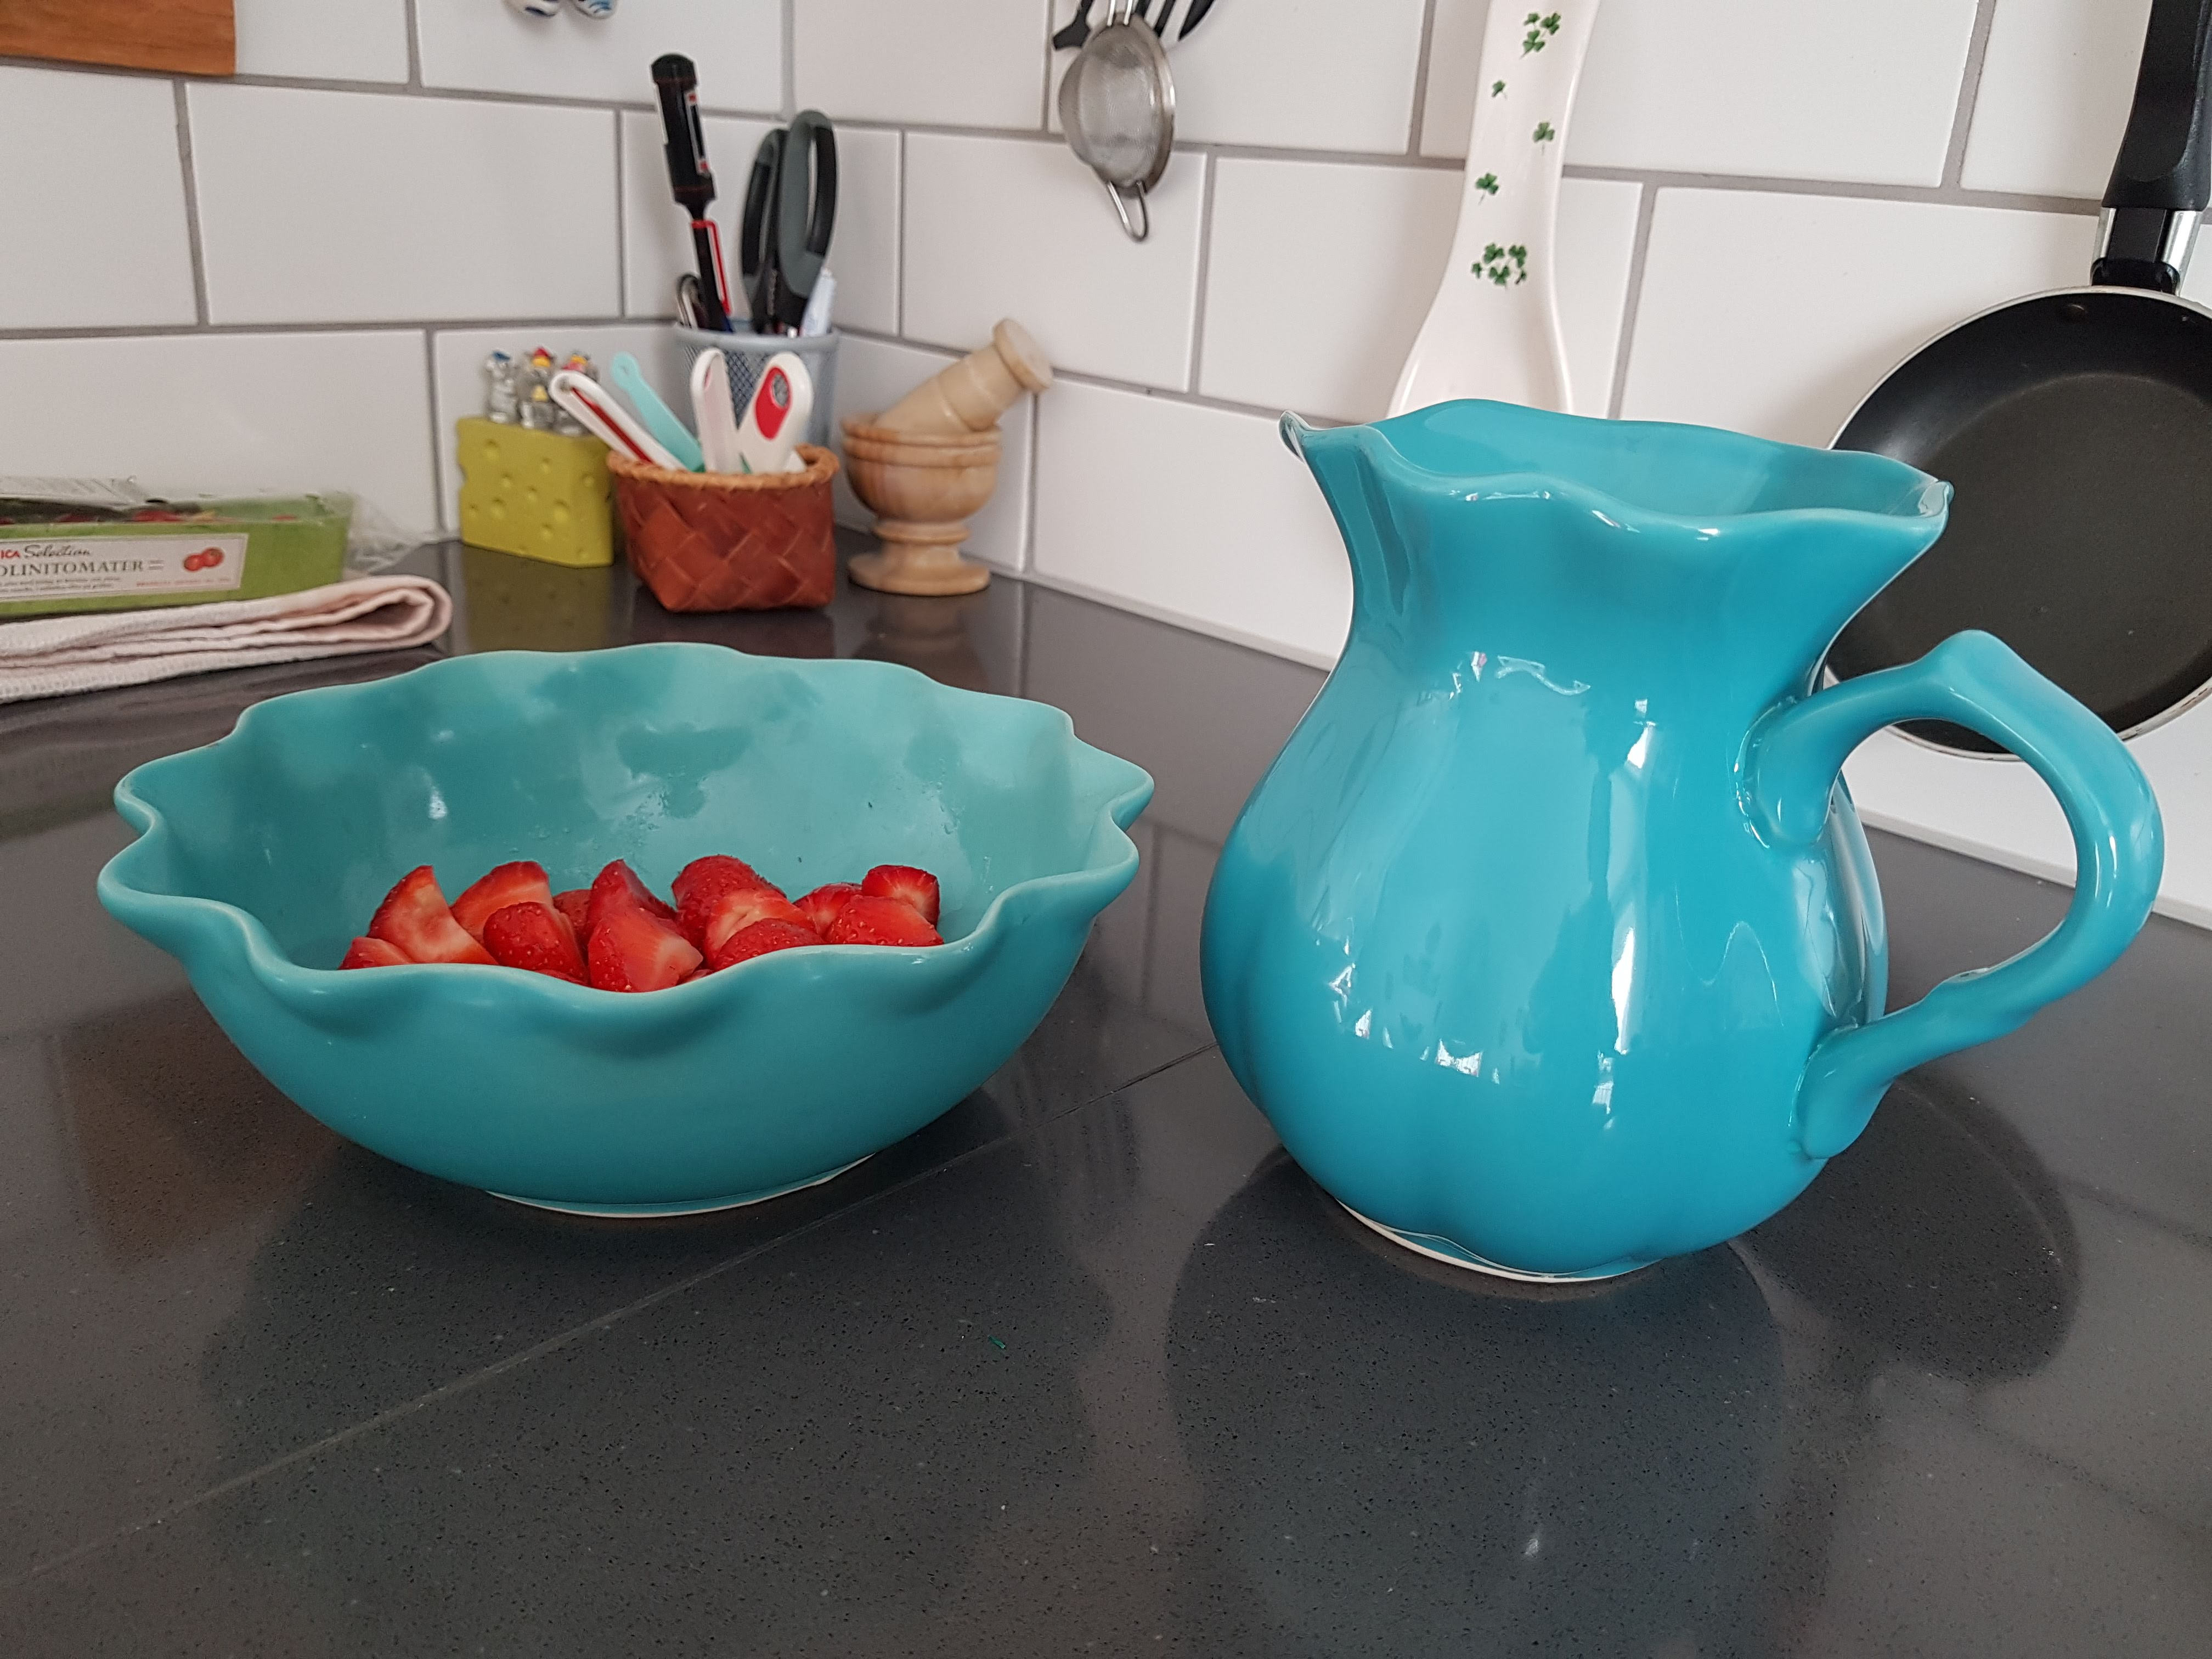 A turquoise bowl (with some strawberries) and jug